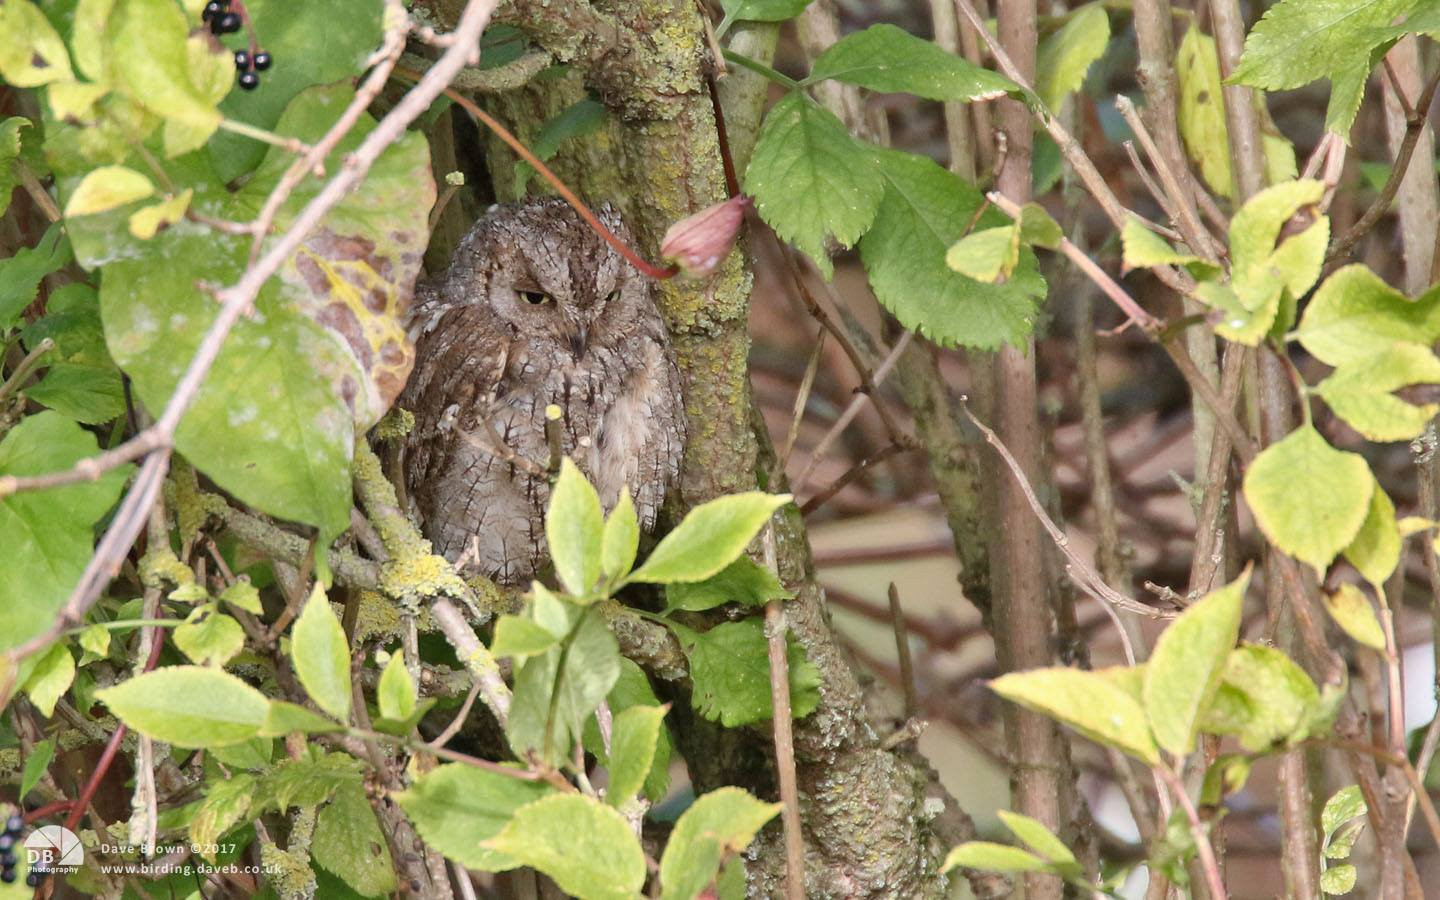 Eurasian Scops Owl at Ryhope, 30th September 2017